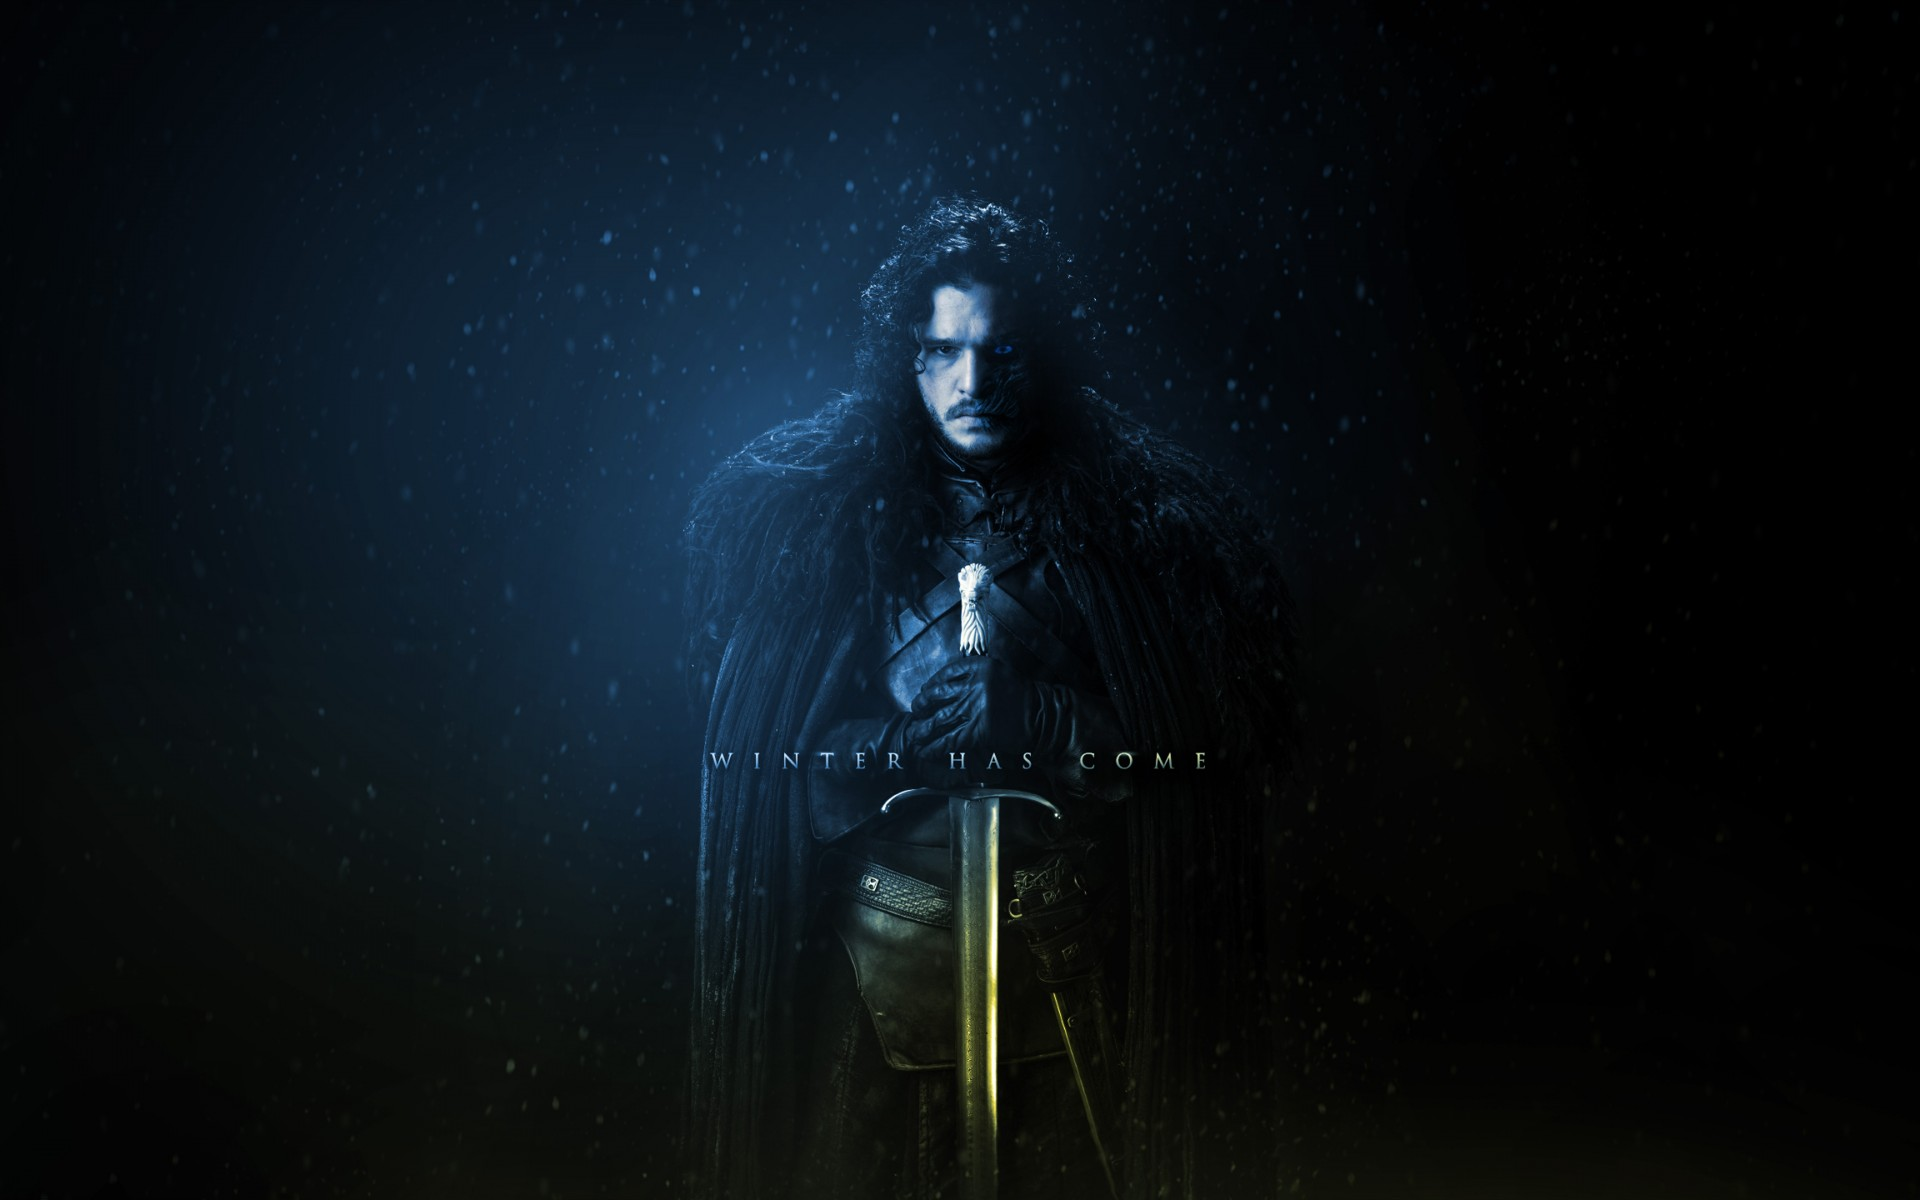 Download-high-quality-Game-of-Thrones-Season-Jon-Snow-Kit-Harington-Winter-has-come-HD-wallpaper-wp3404865